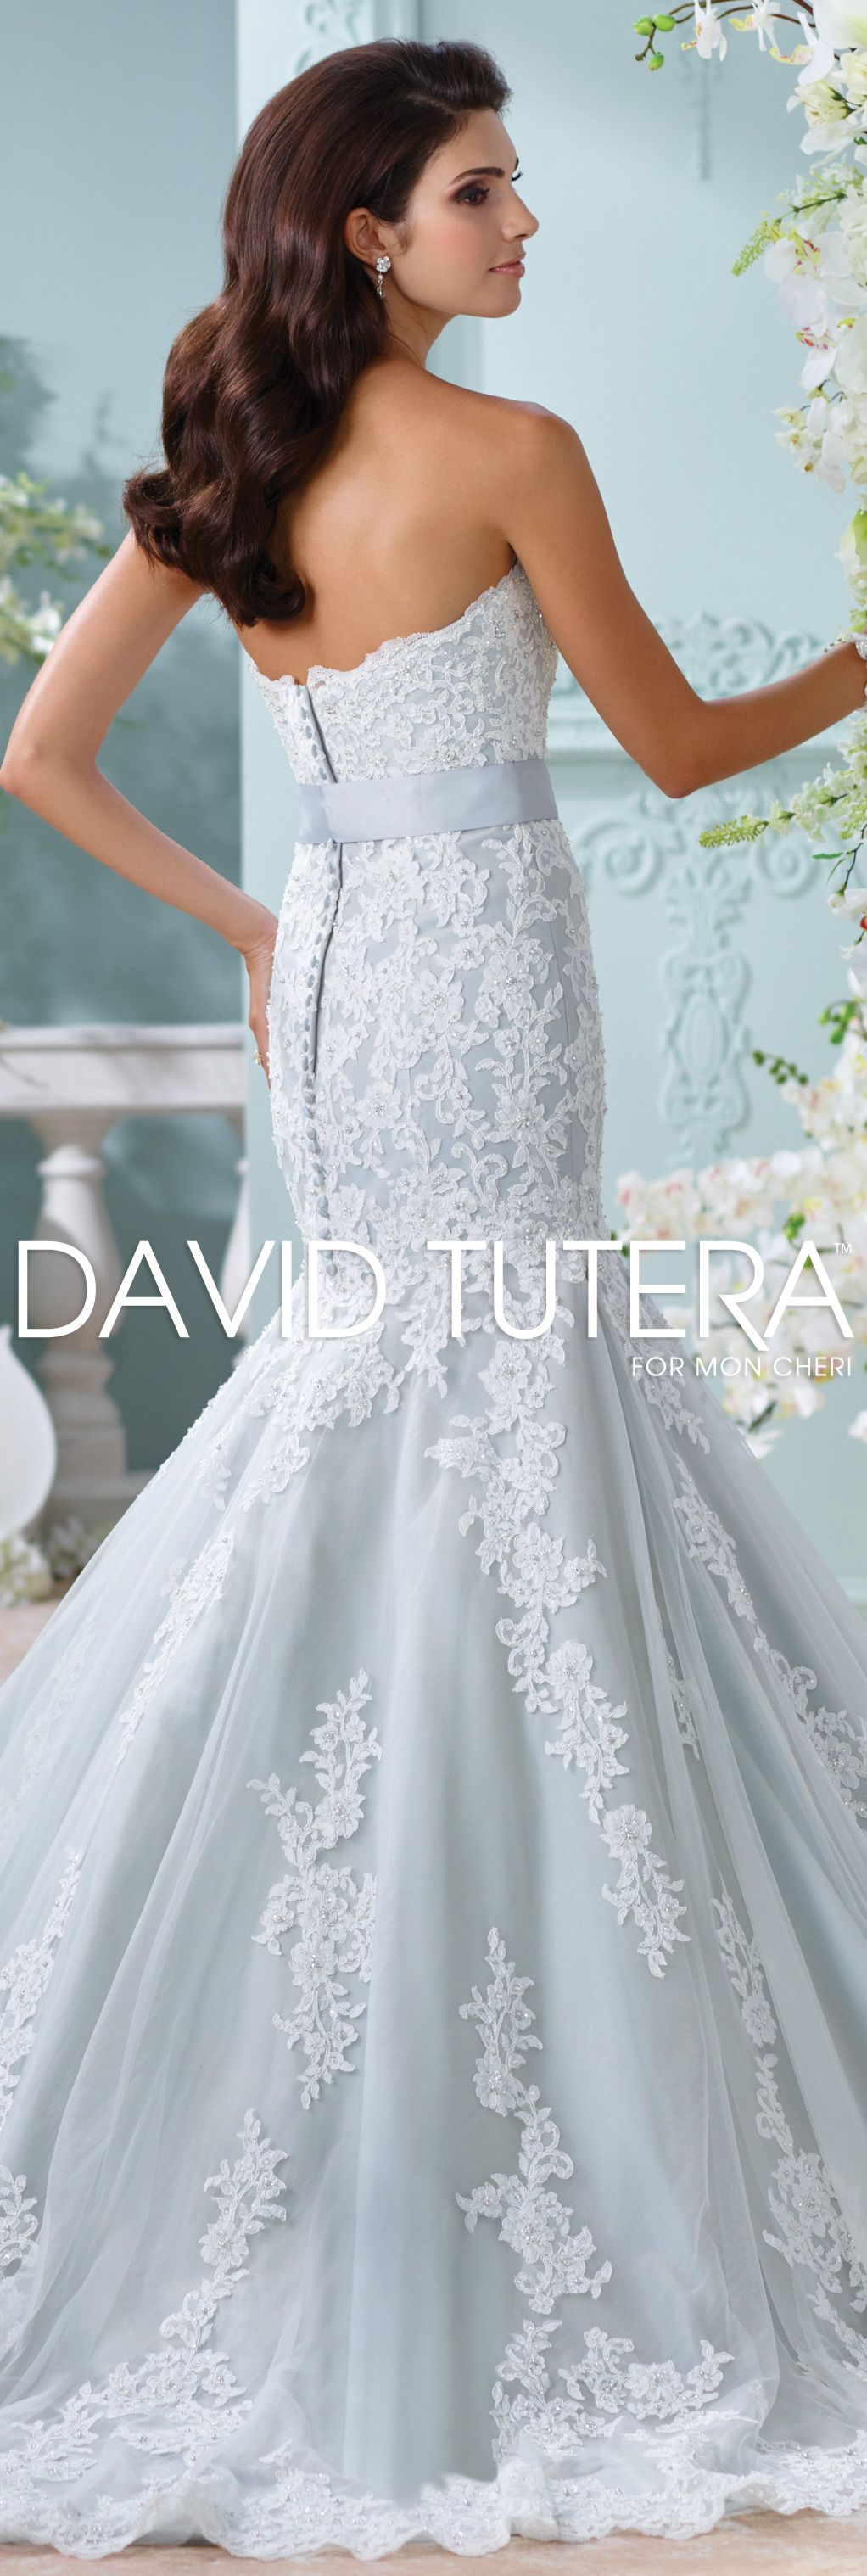 Unique Wedding Dresses Spring 2018 - Martin Thornburg | David tutera ...